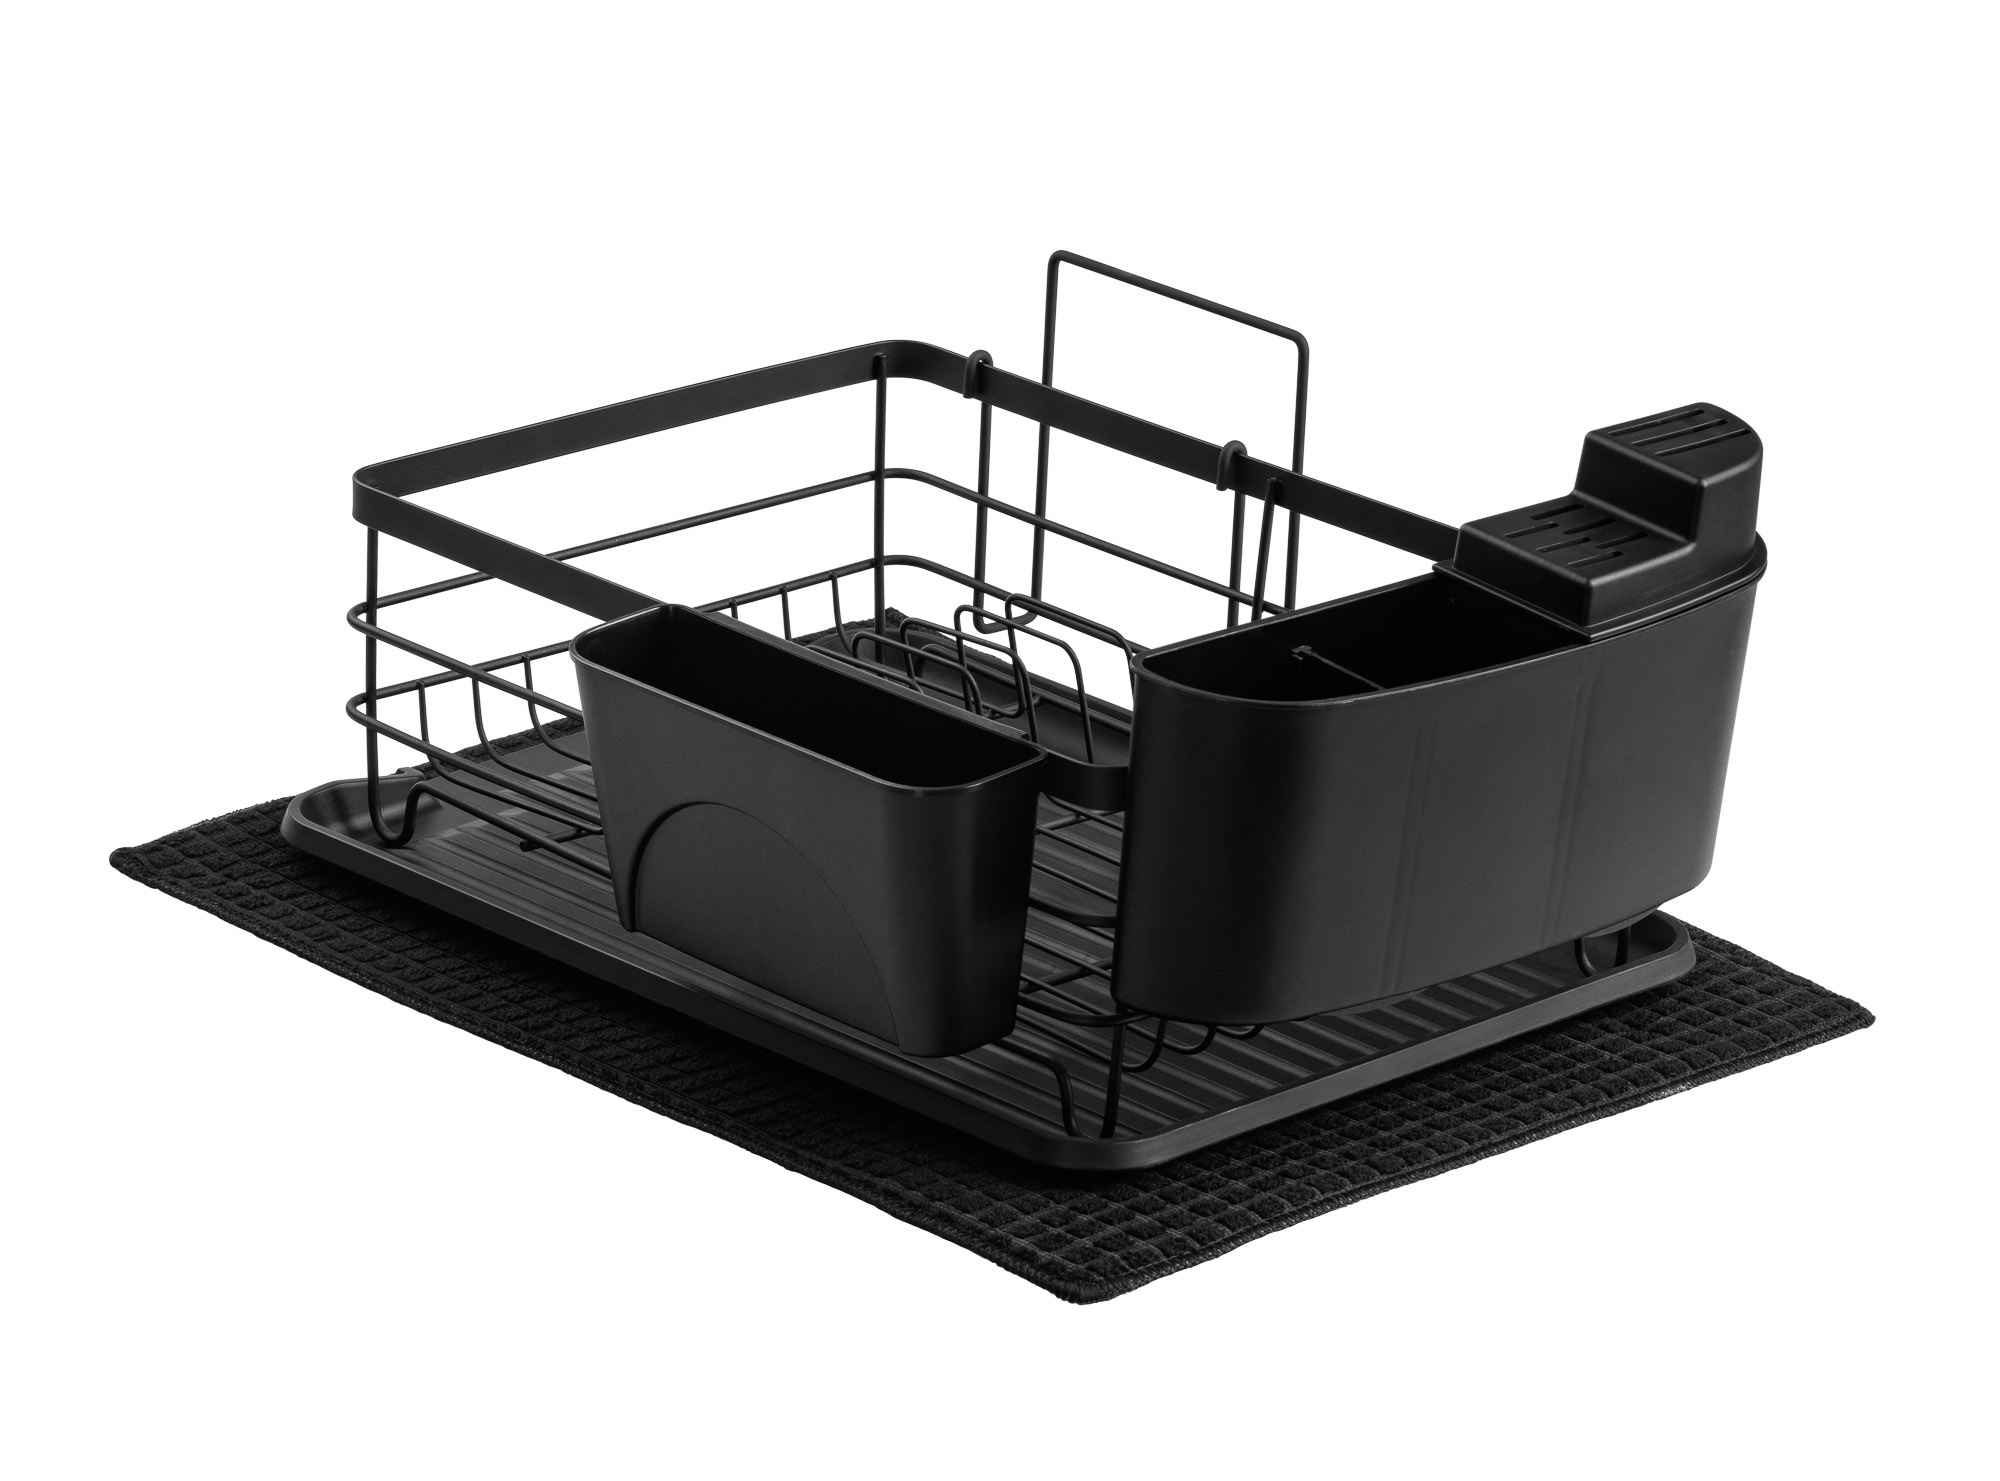 Dish Rack All parts - Main photo Reverse view - Product photo for Amazon